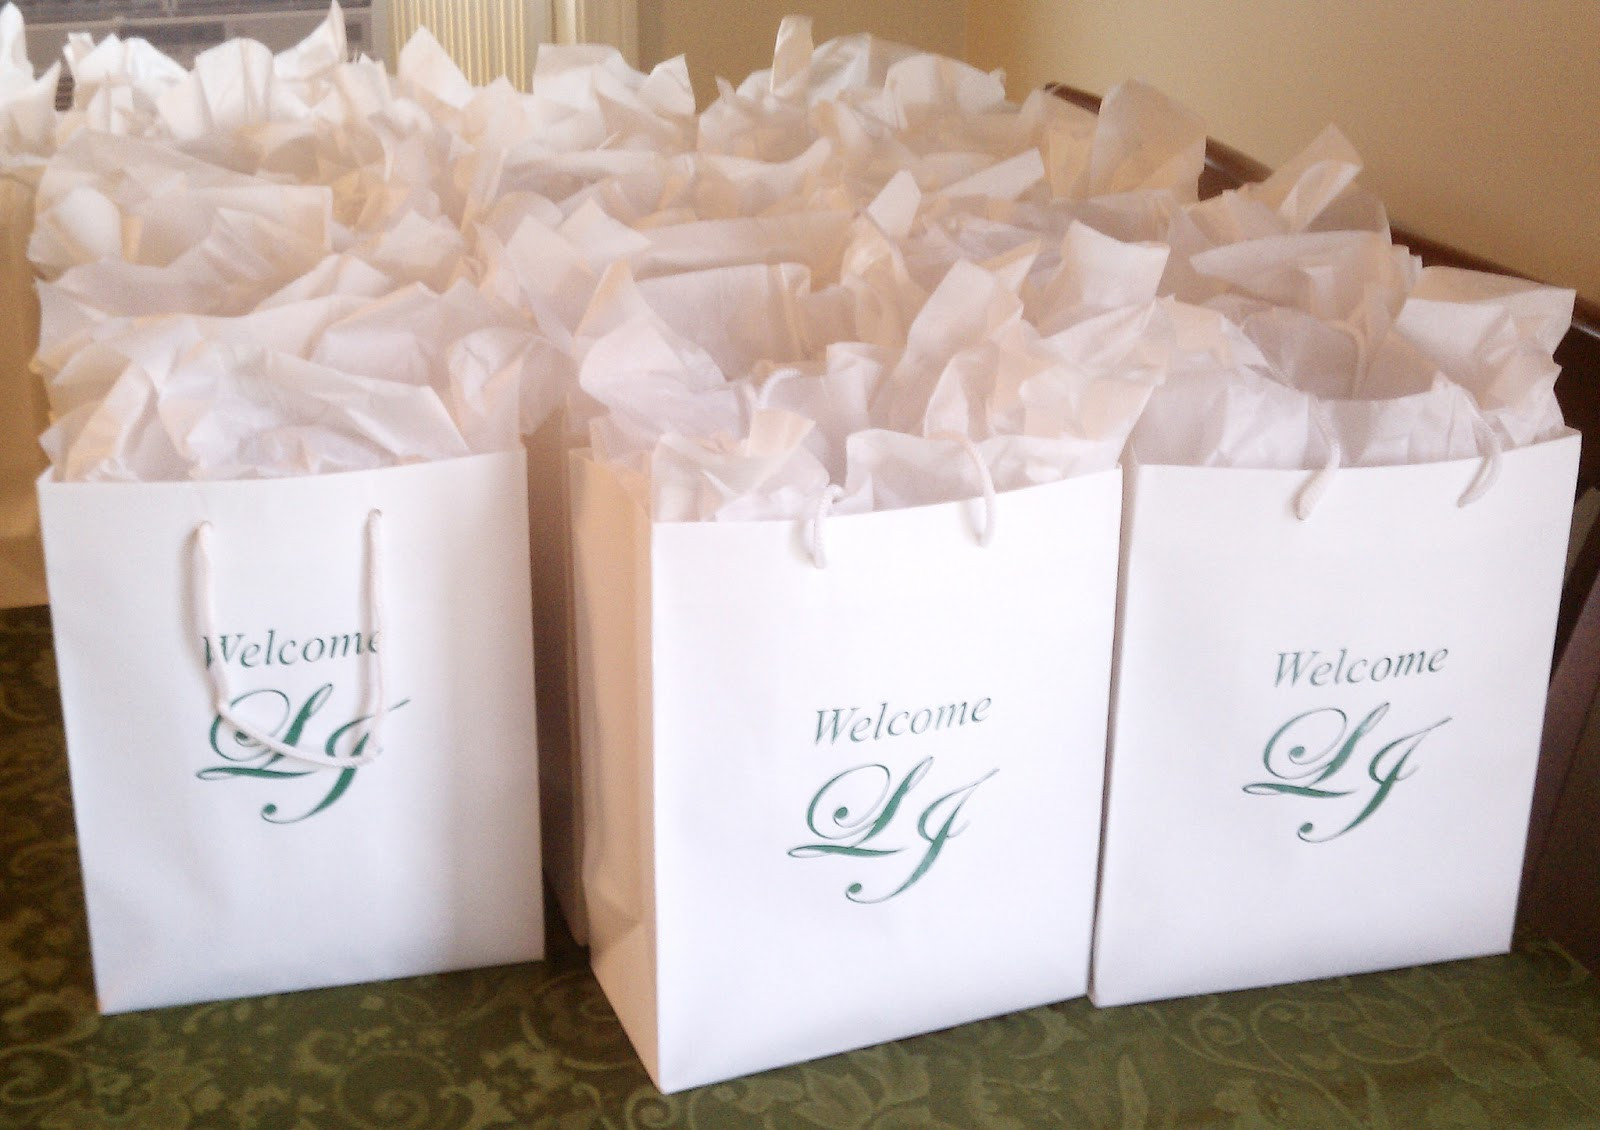 Best ideas about Wedding Hotel Gift Bag Ideas . Save or Pin 55 Wel e Bags For Hotel Guests Wedding Hotel Guest Gift Now.